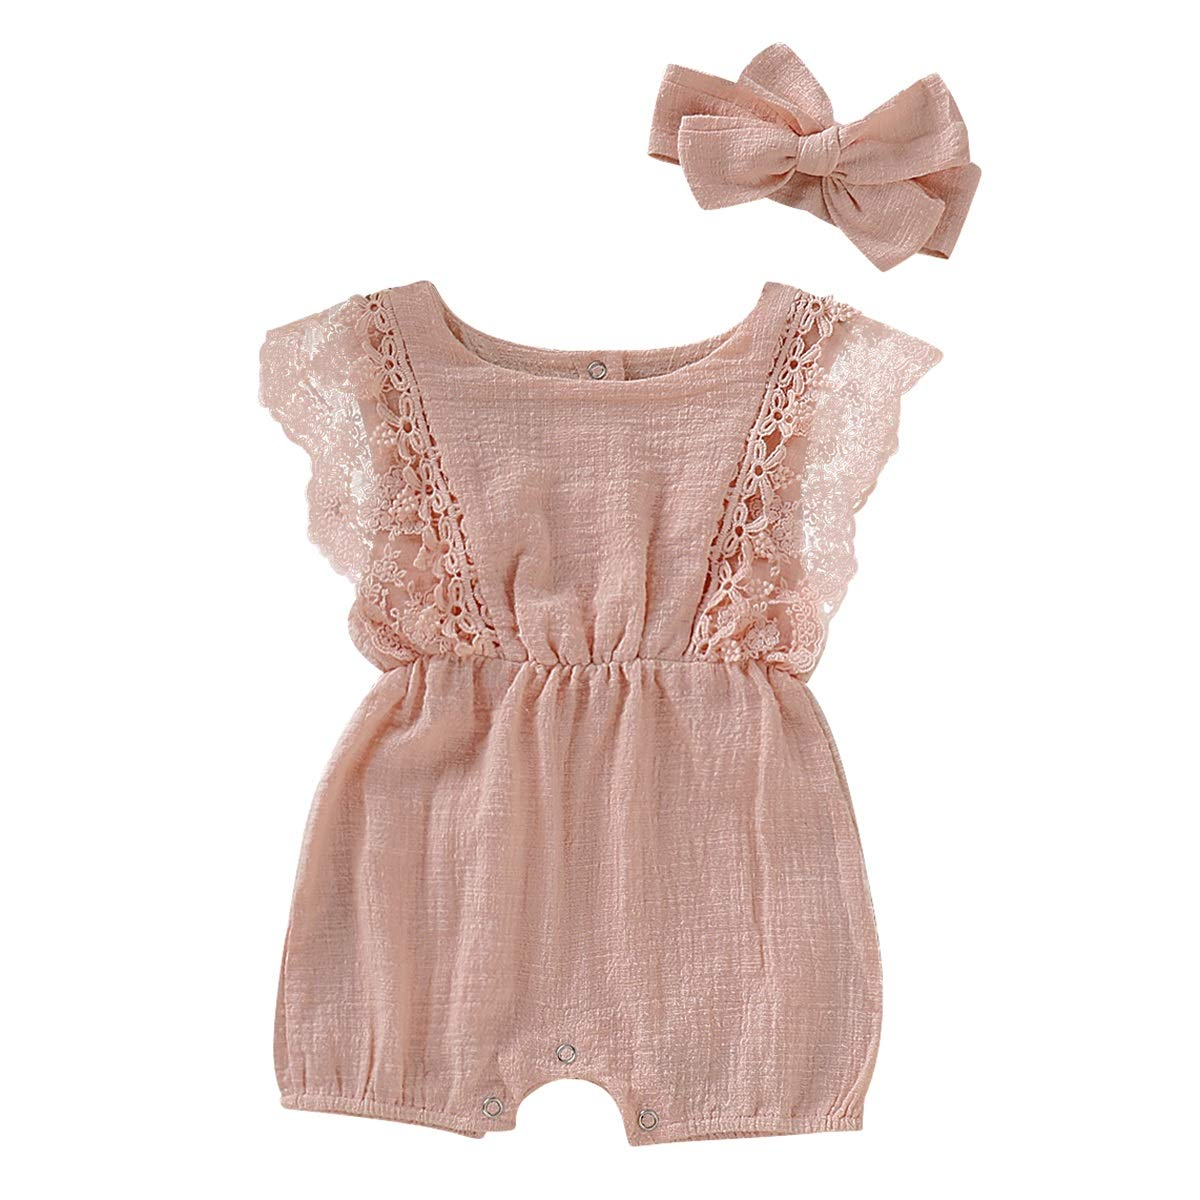 Bowknot Headband Outfits Set puseky Infant Baby Girl Lace Sleeve Elastic Waist Romper